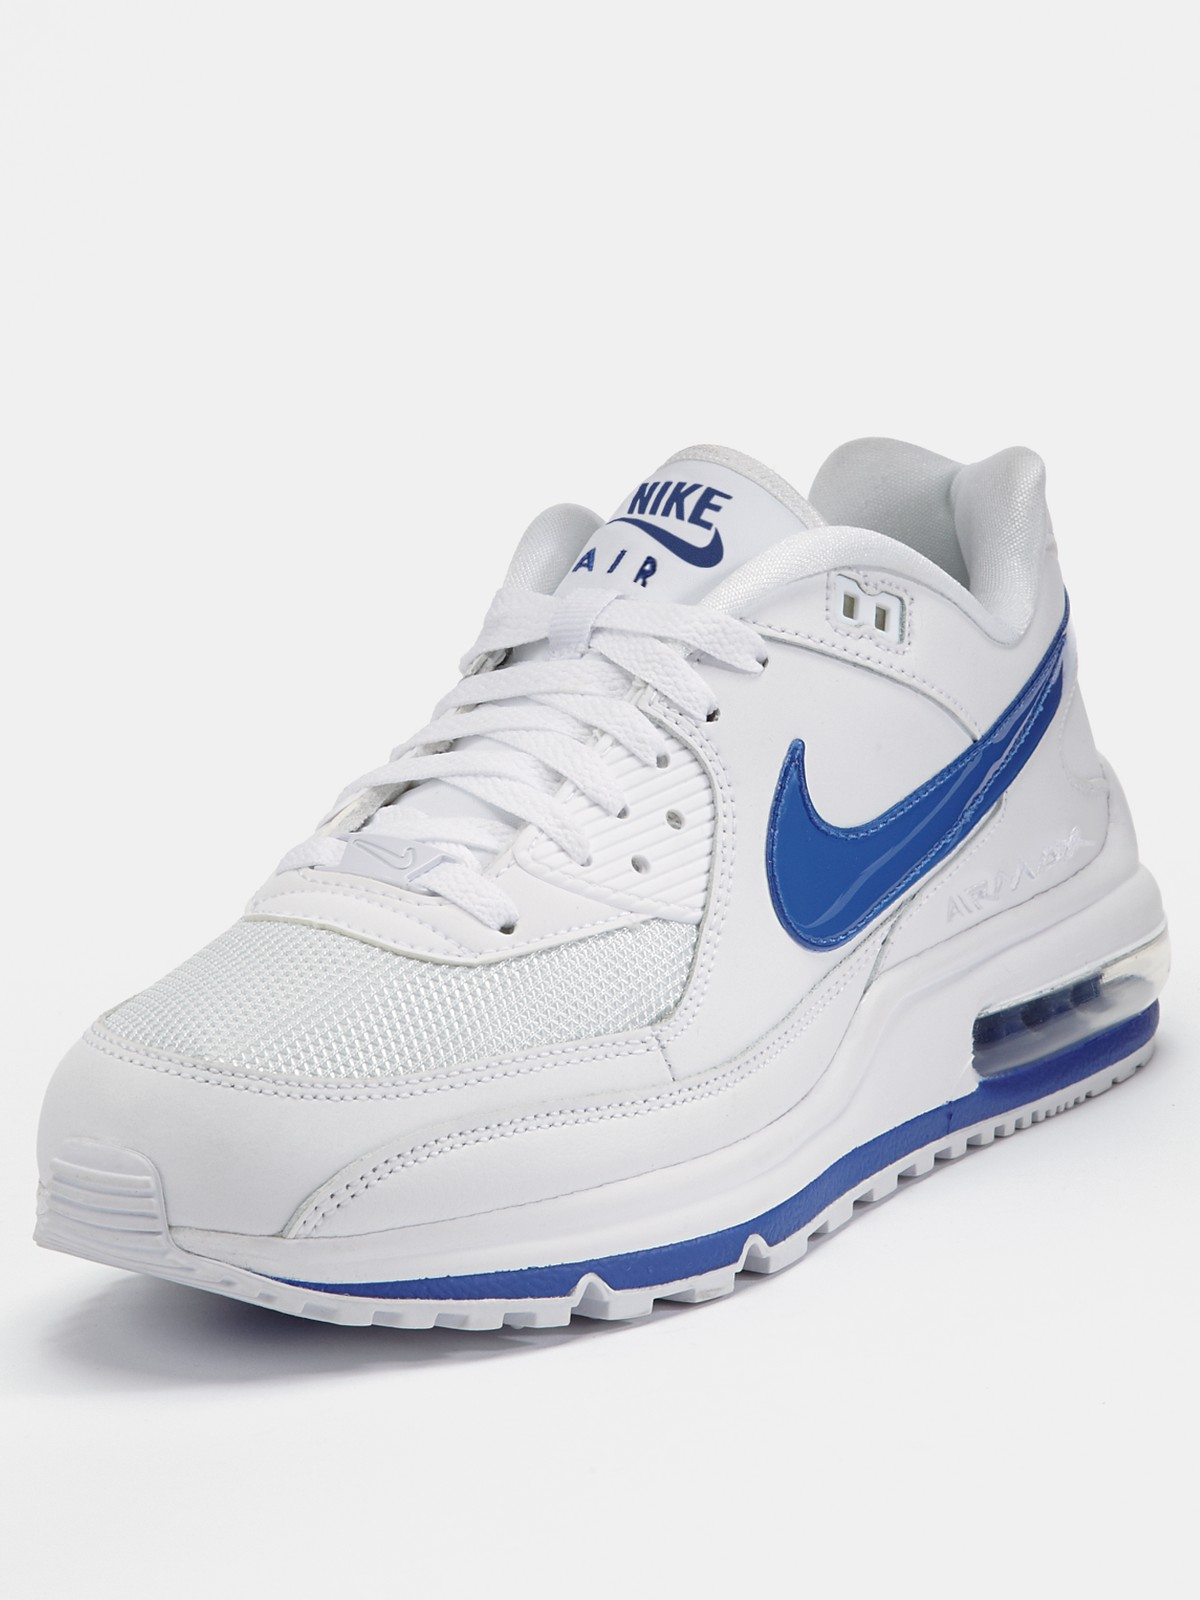 nike nike air max ltd ii mens trainers in white for men. Black Bedroom Furniture Sets. Home Design Ideas